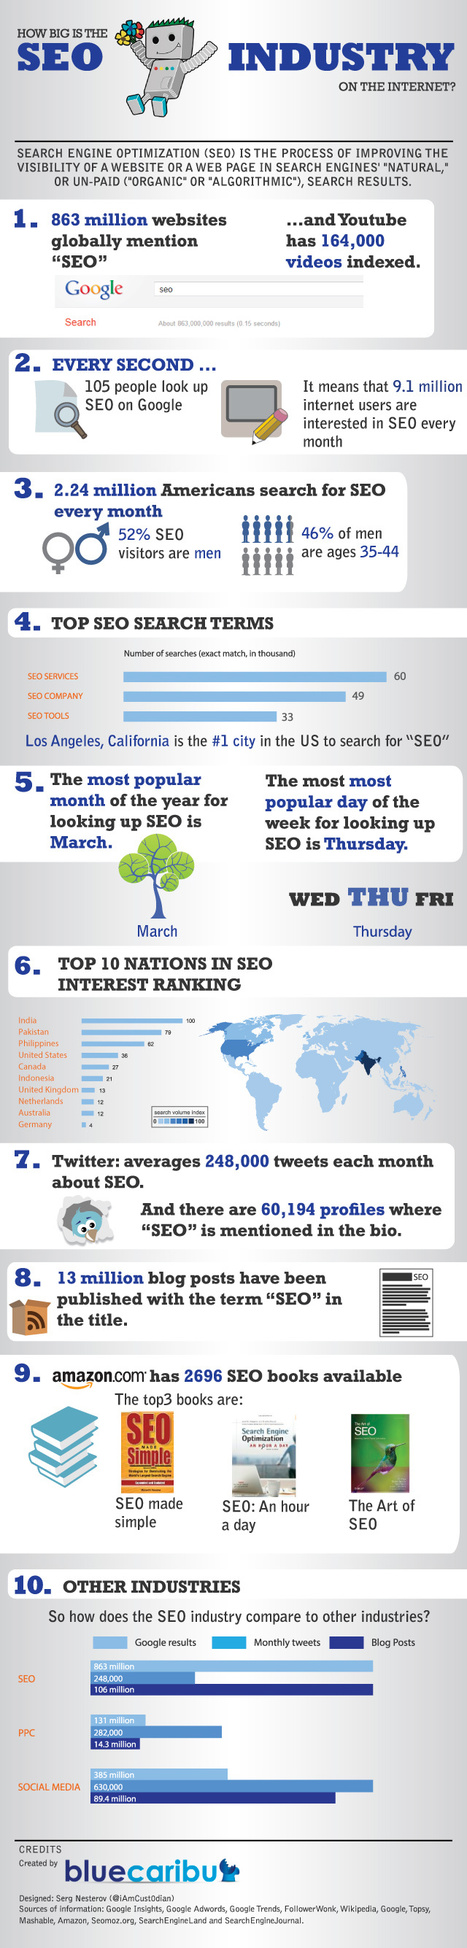 SEO Is More Important Than Social Media [INFOGRAPHIC] | SEO and Social Media Marketing | Scoop.it